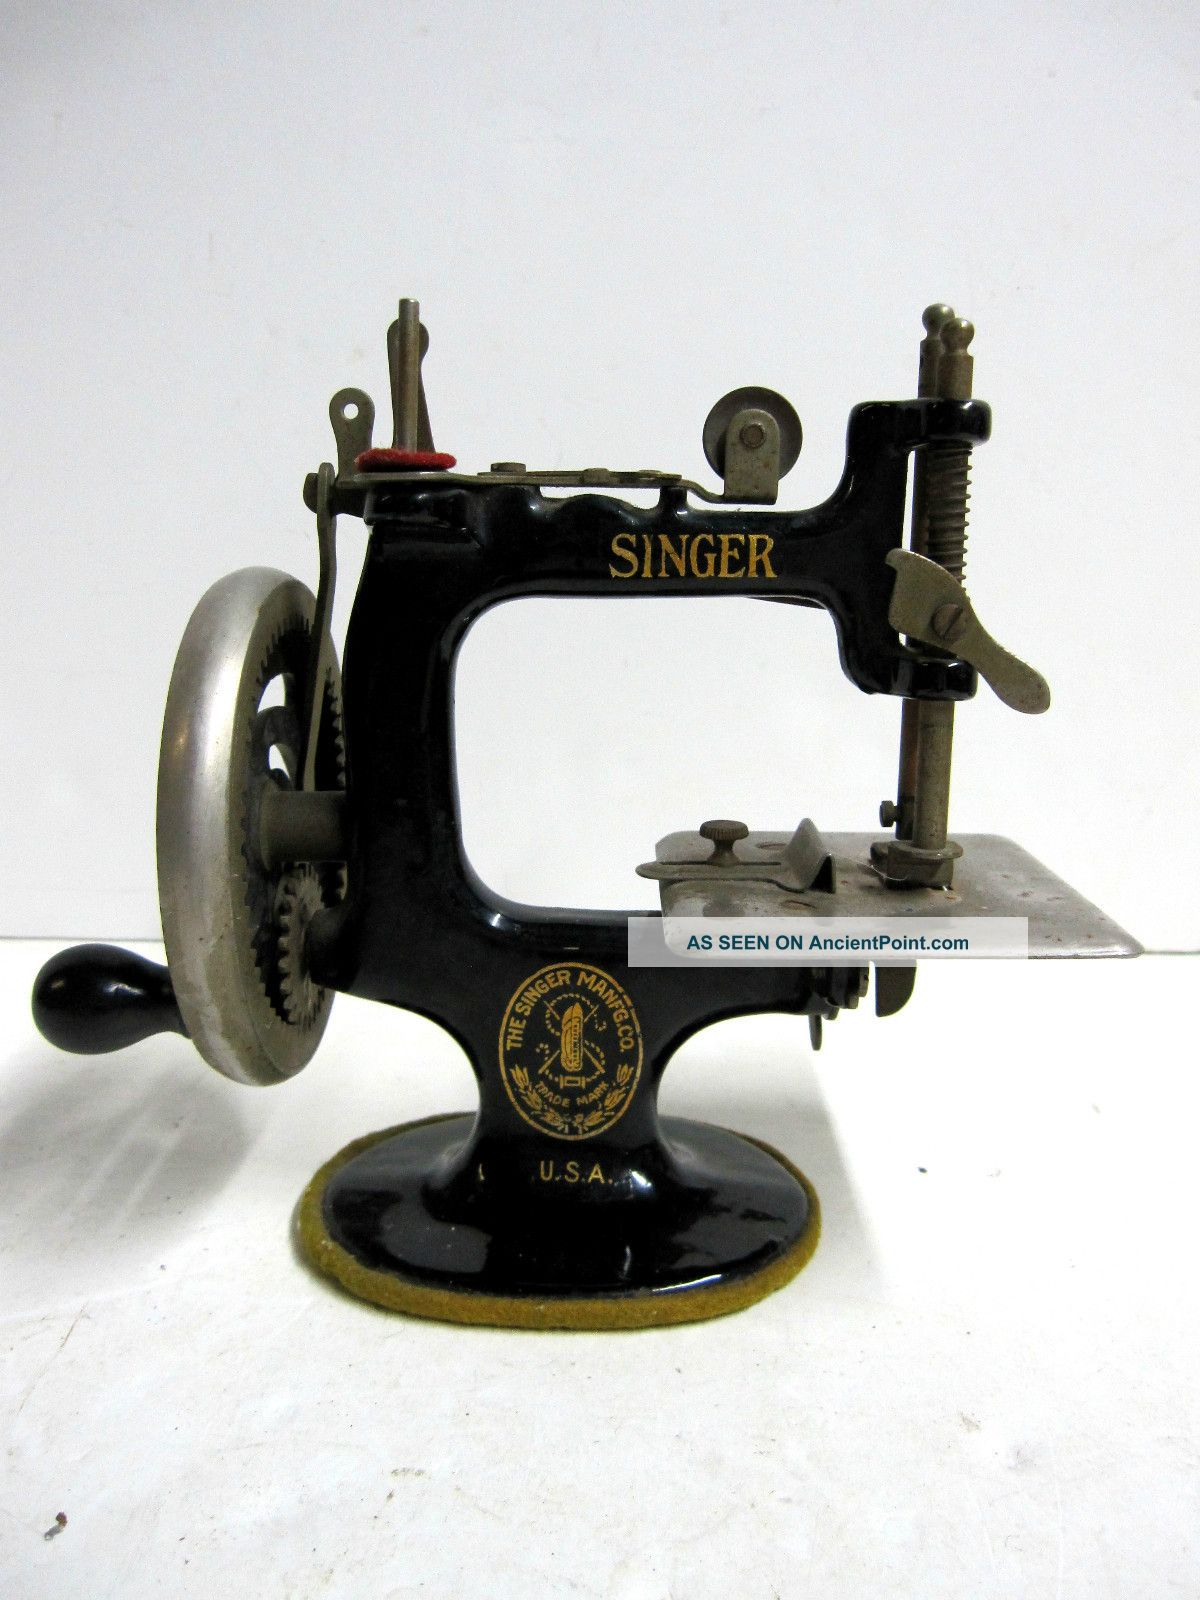 Rare Antique 1914 Singer 20 Sewing Machine Toy Miniature Works Well But Read Sewing Machines photo